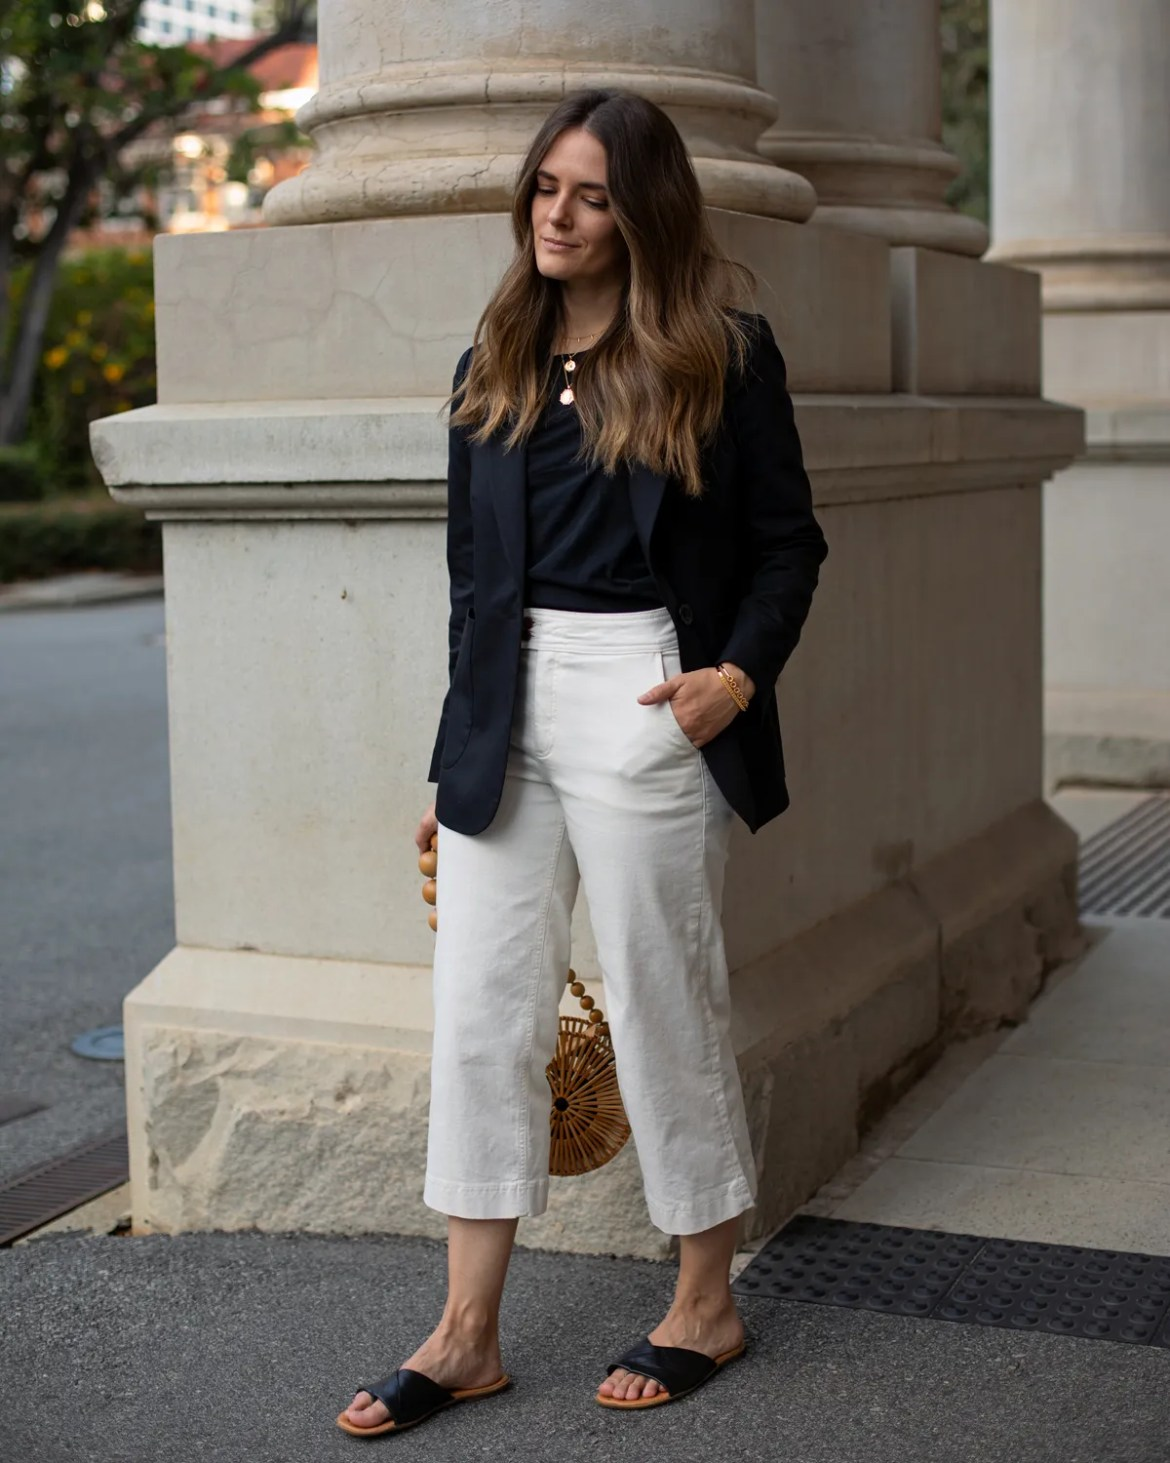 Black blazer, cream pants outfit with black slides outfit idea for everyday